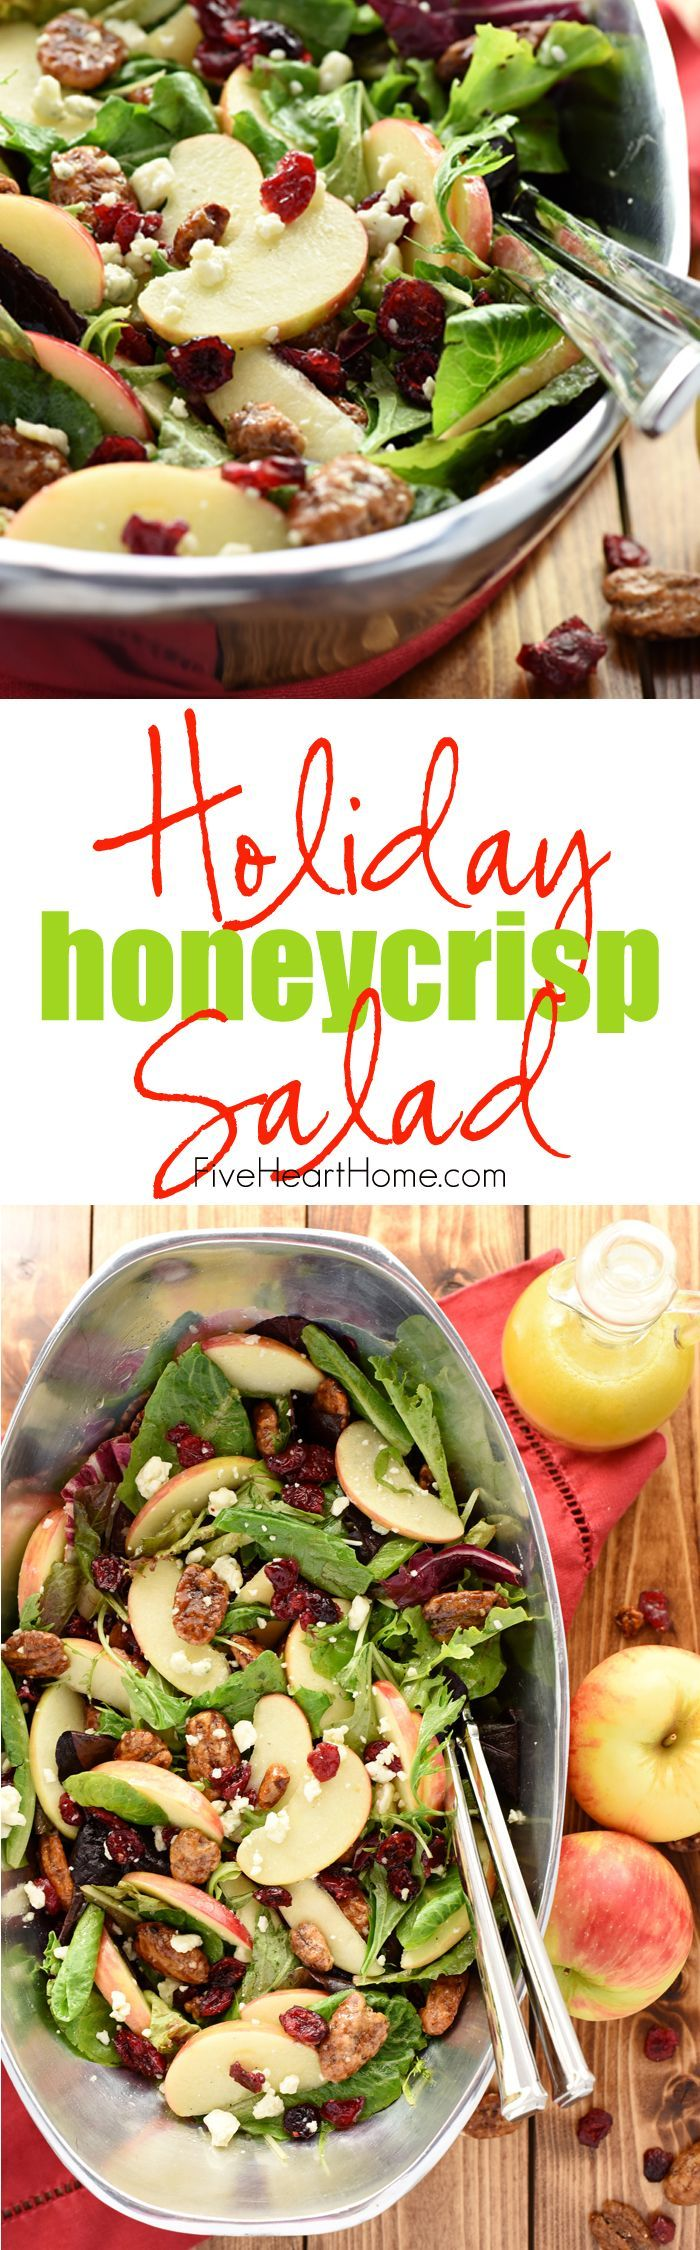 This honeycrisp apple salad looks perfect for a Christmas dinner! #Christmas #salad #dinner